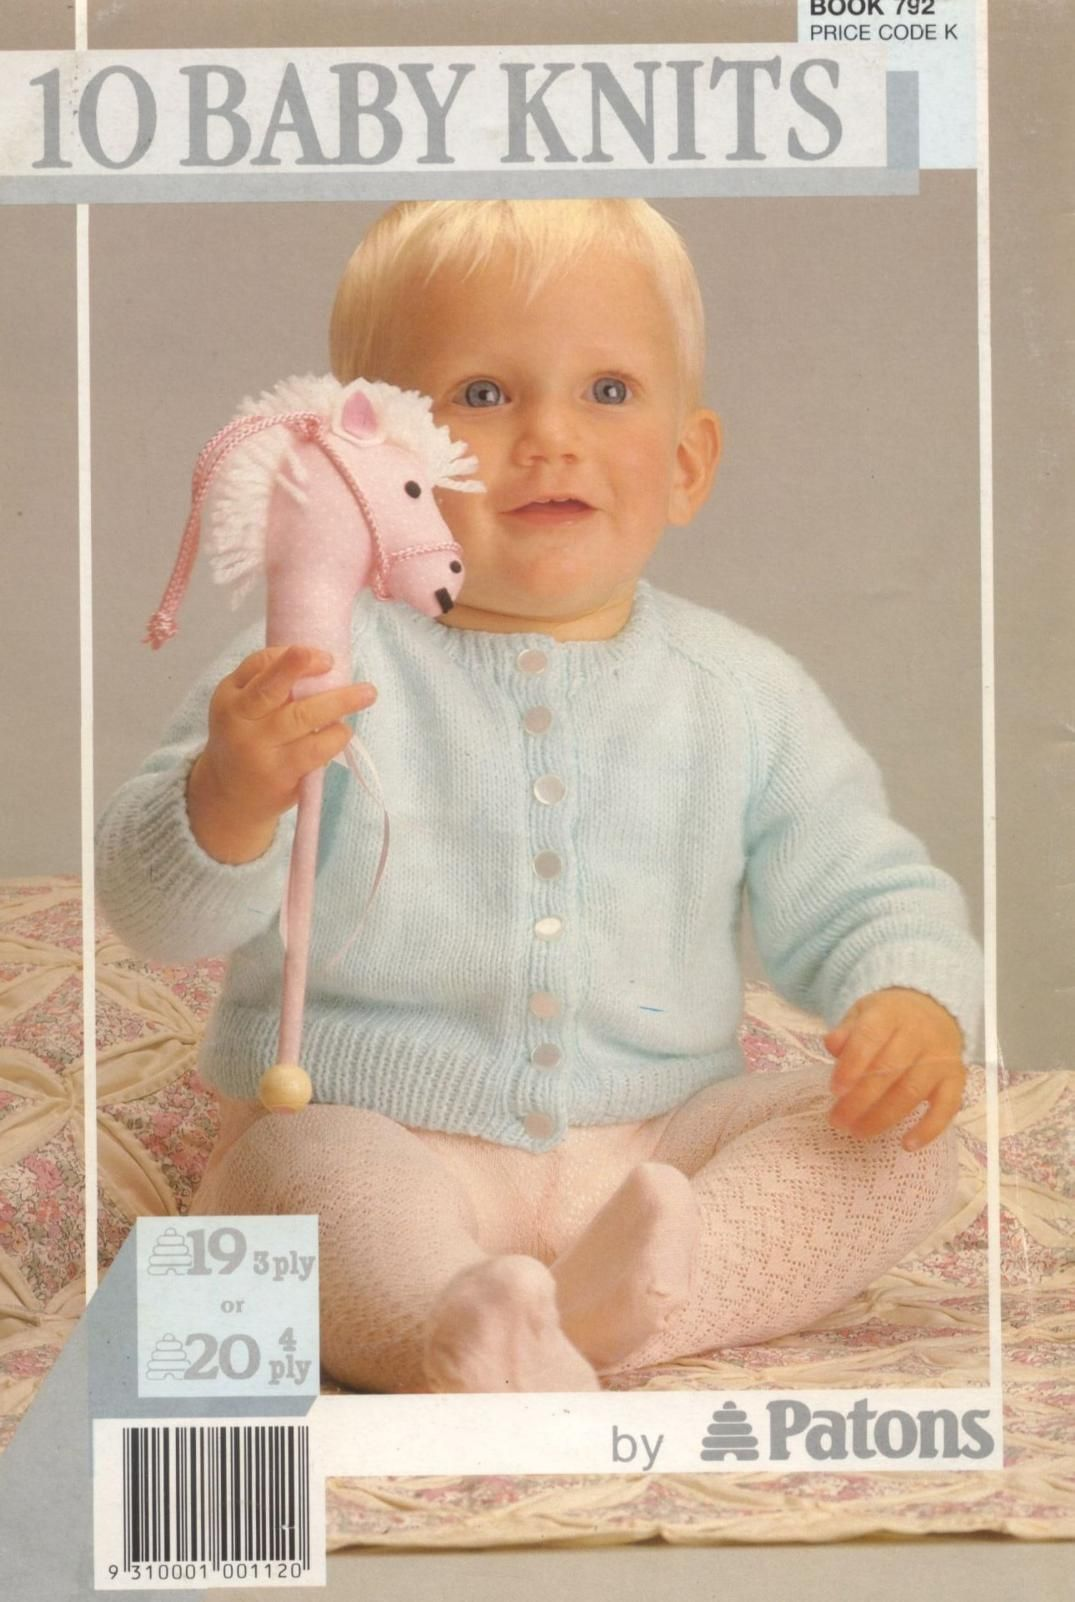 Patons 792 10 Baby Knits | vintage baby patterns | Pinterest | Baby ...